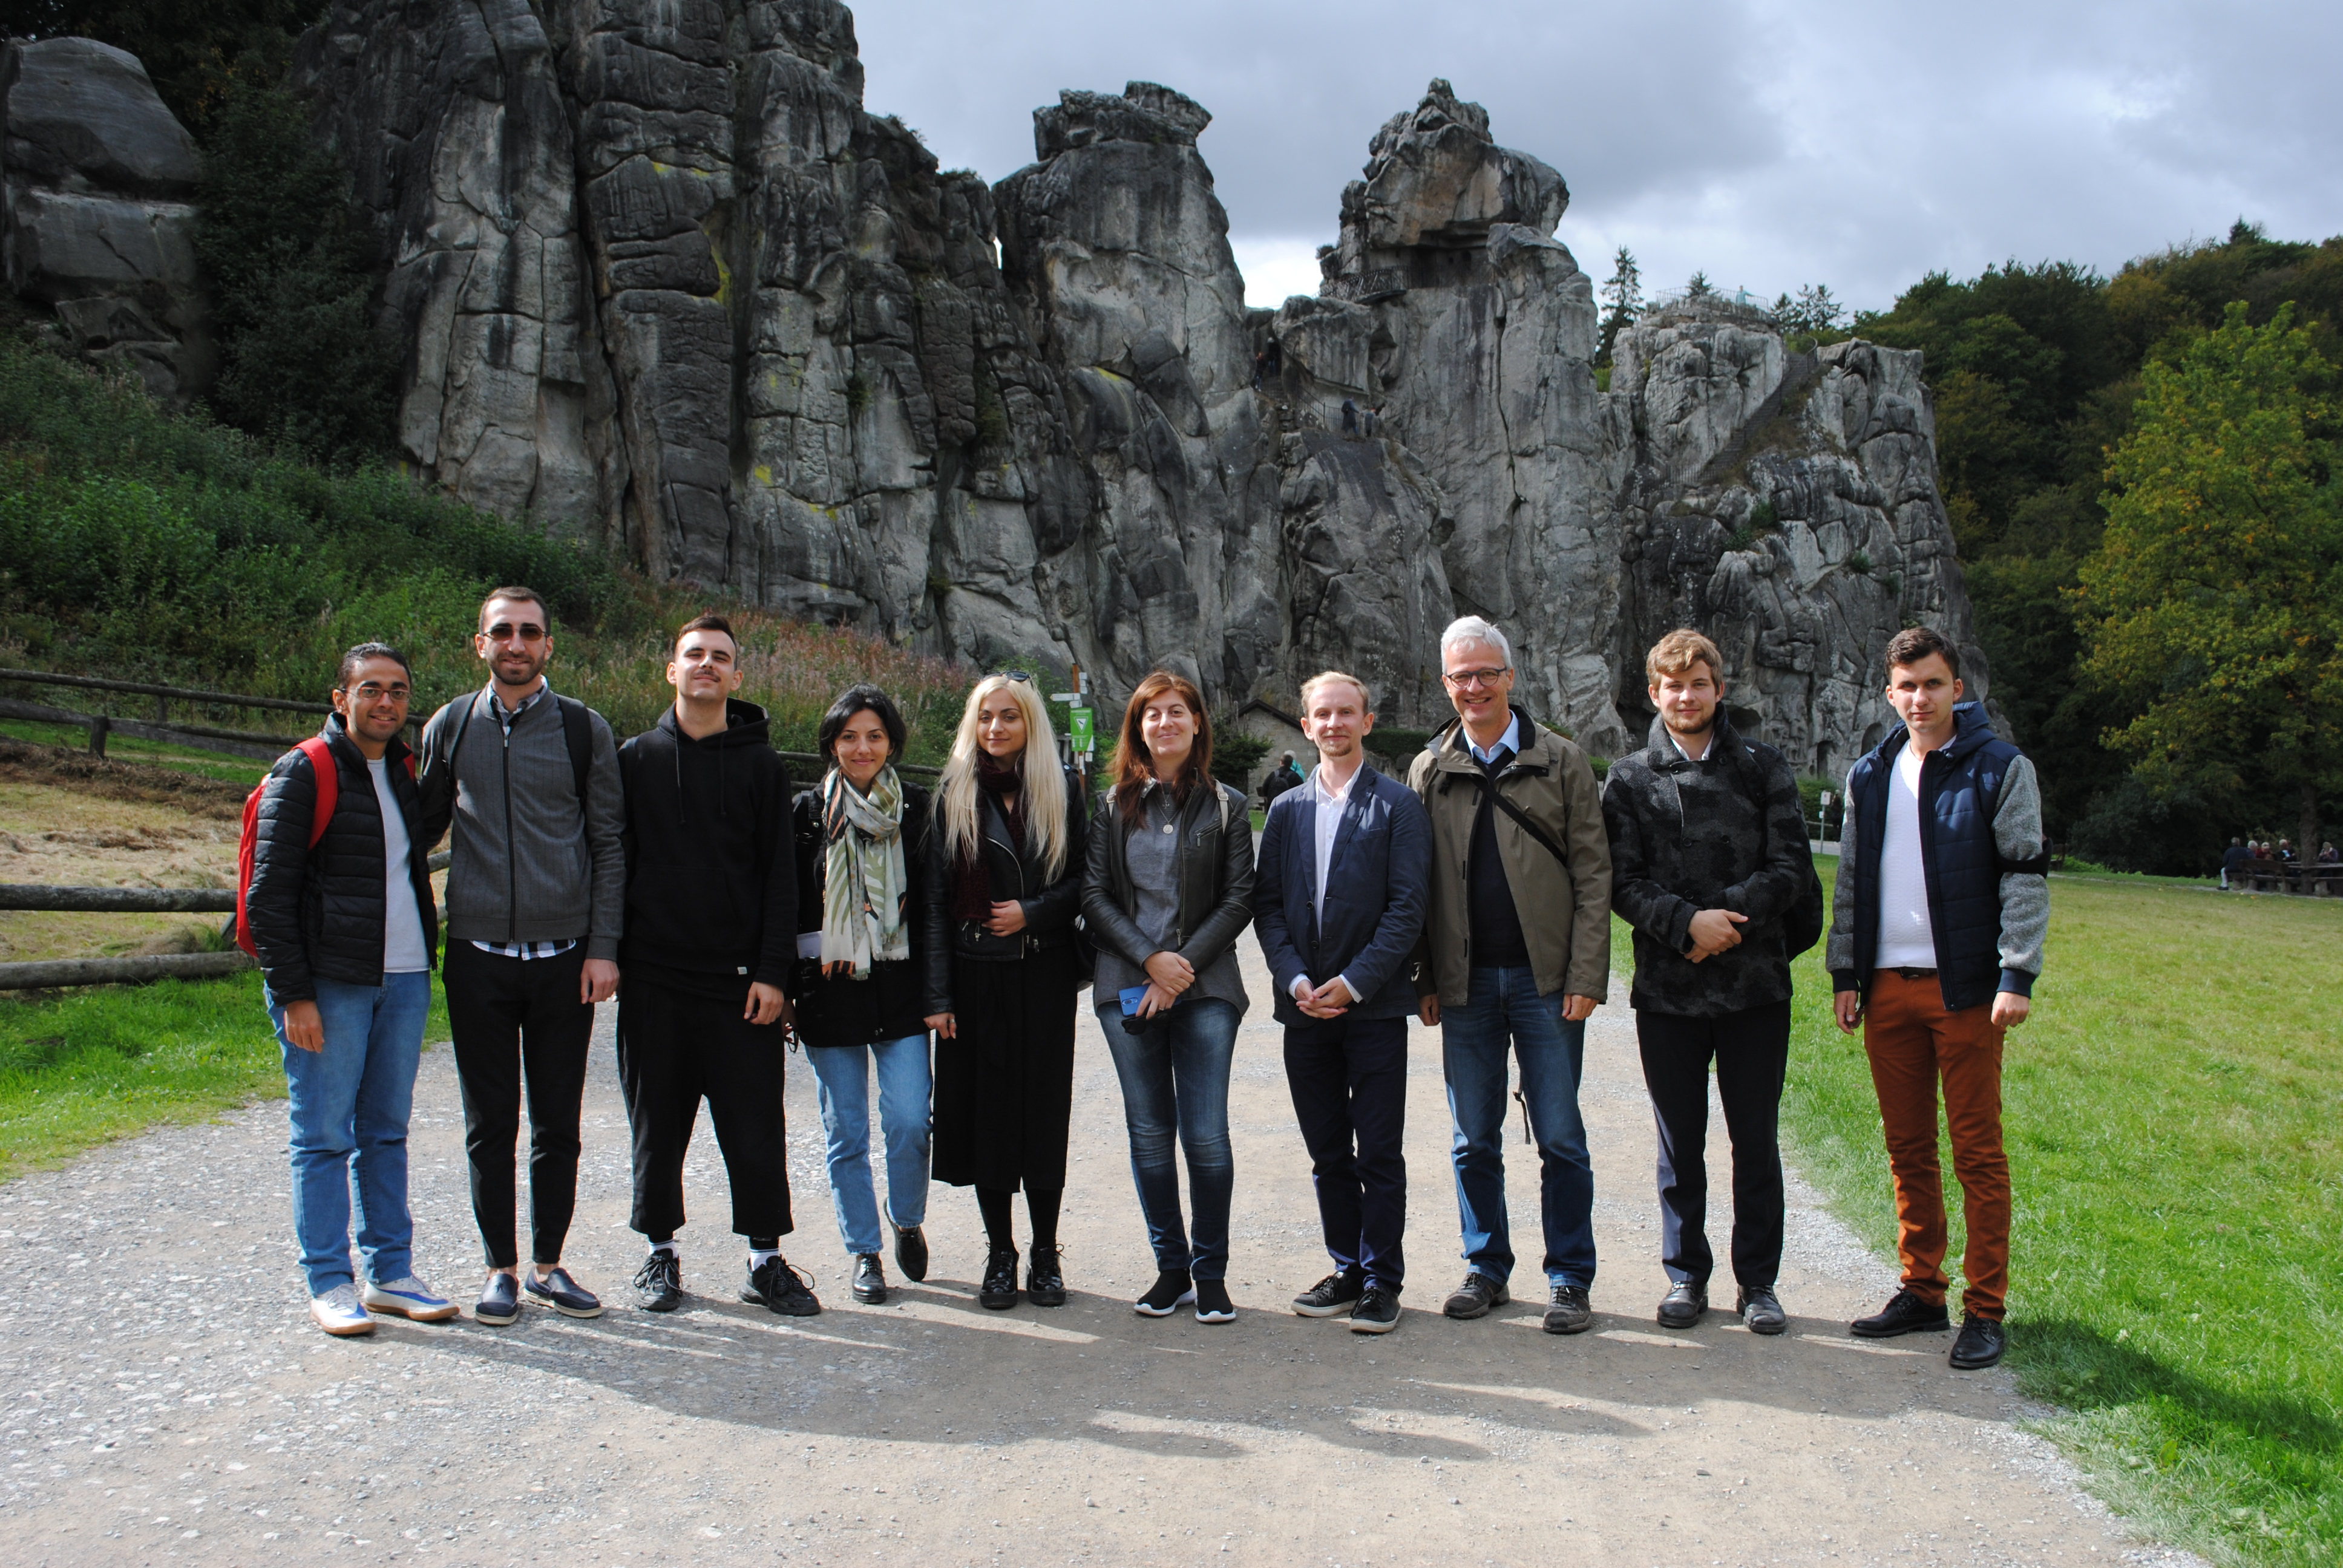 Externsteine: Group picture in front of the rocks